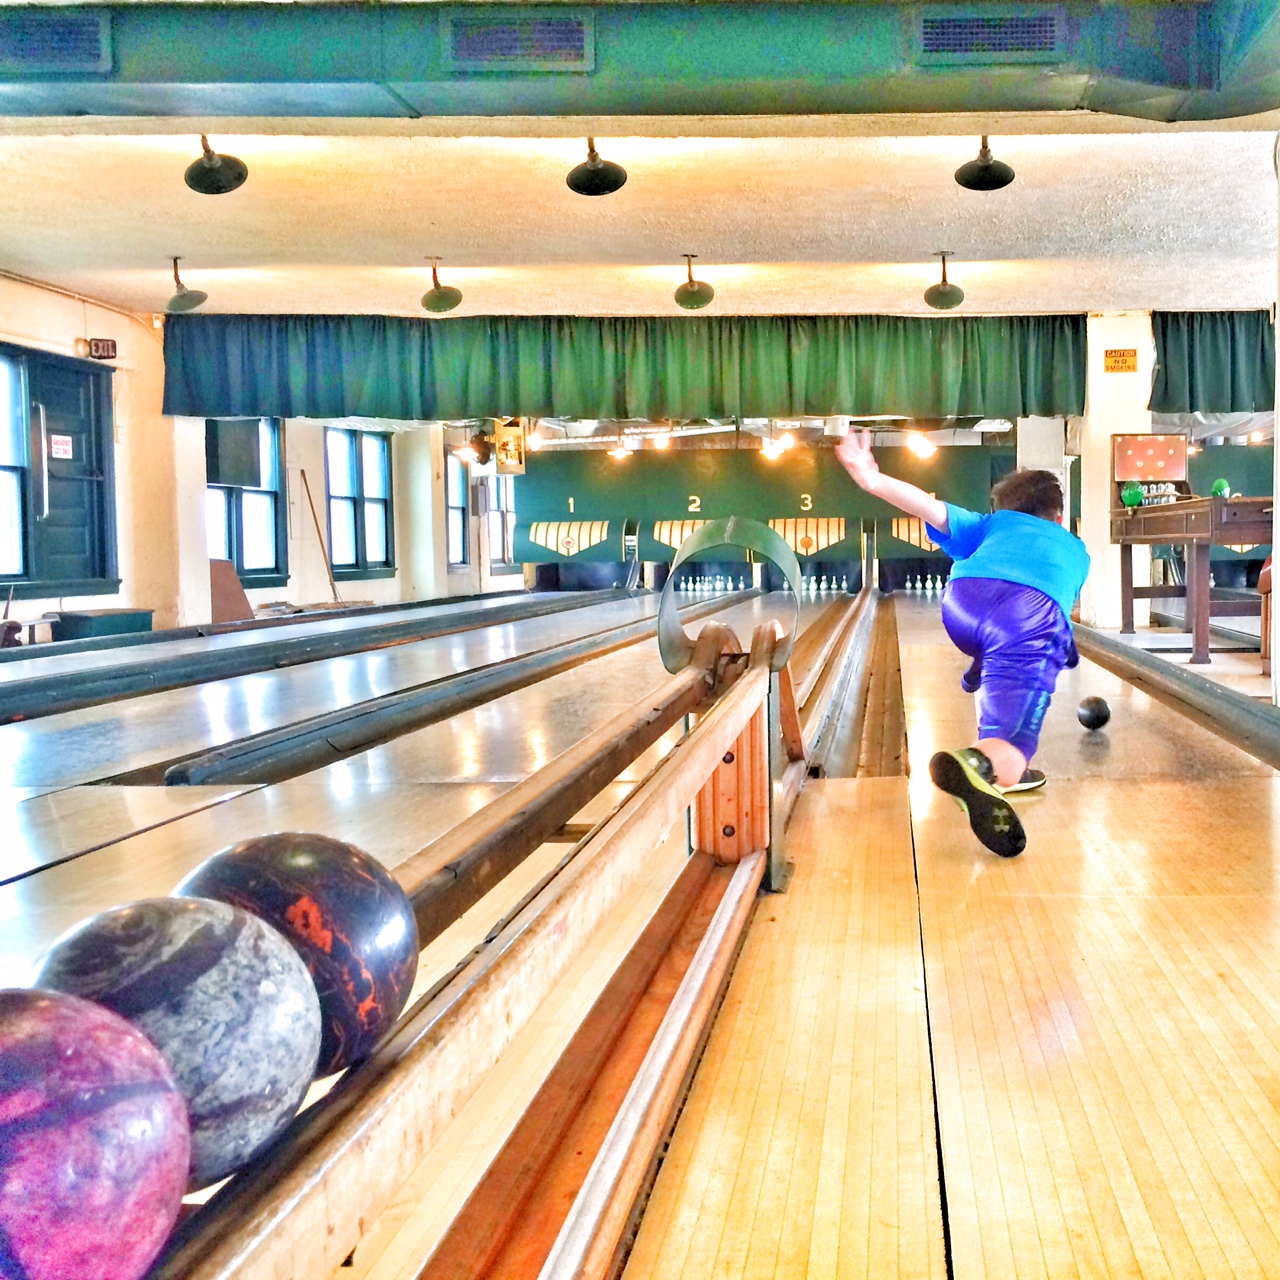 things to do with kids in indianapolis - Atomic Duckpin Bowling